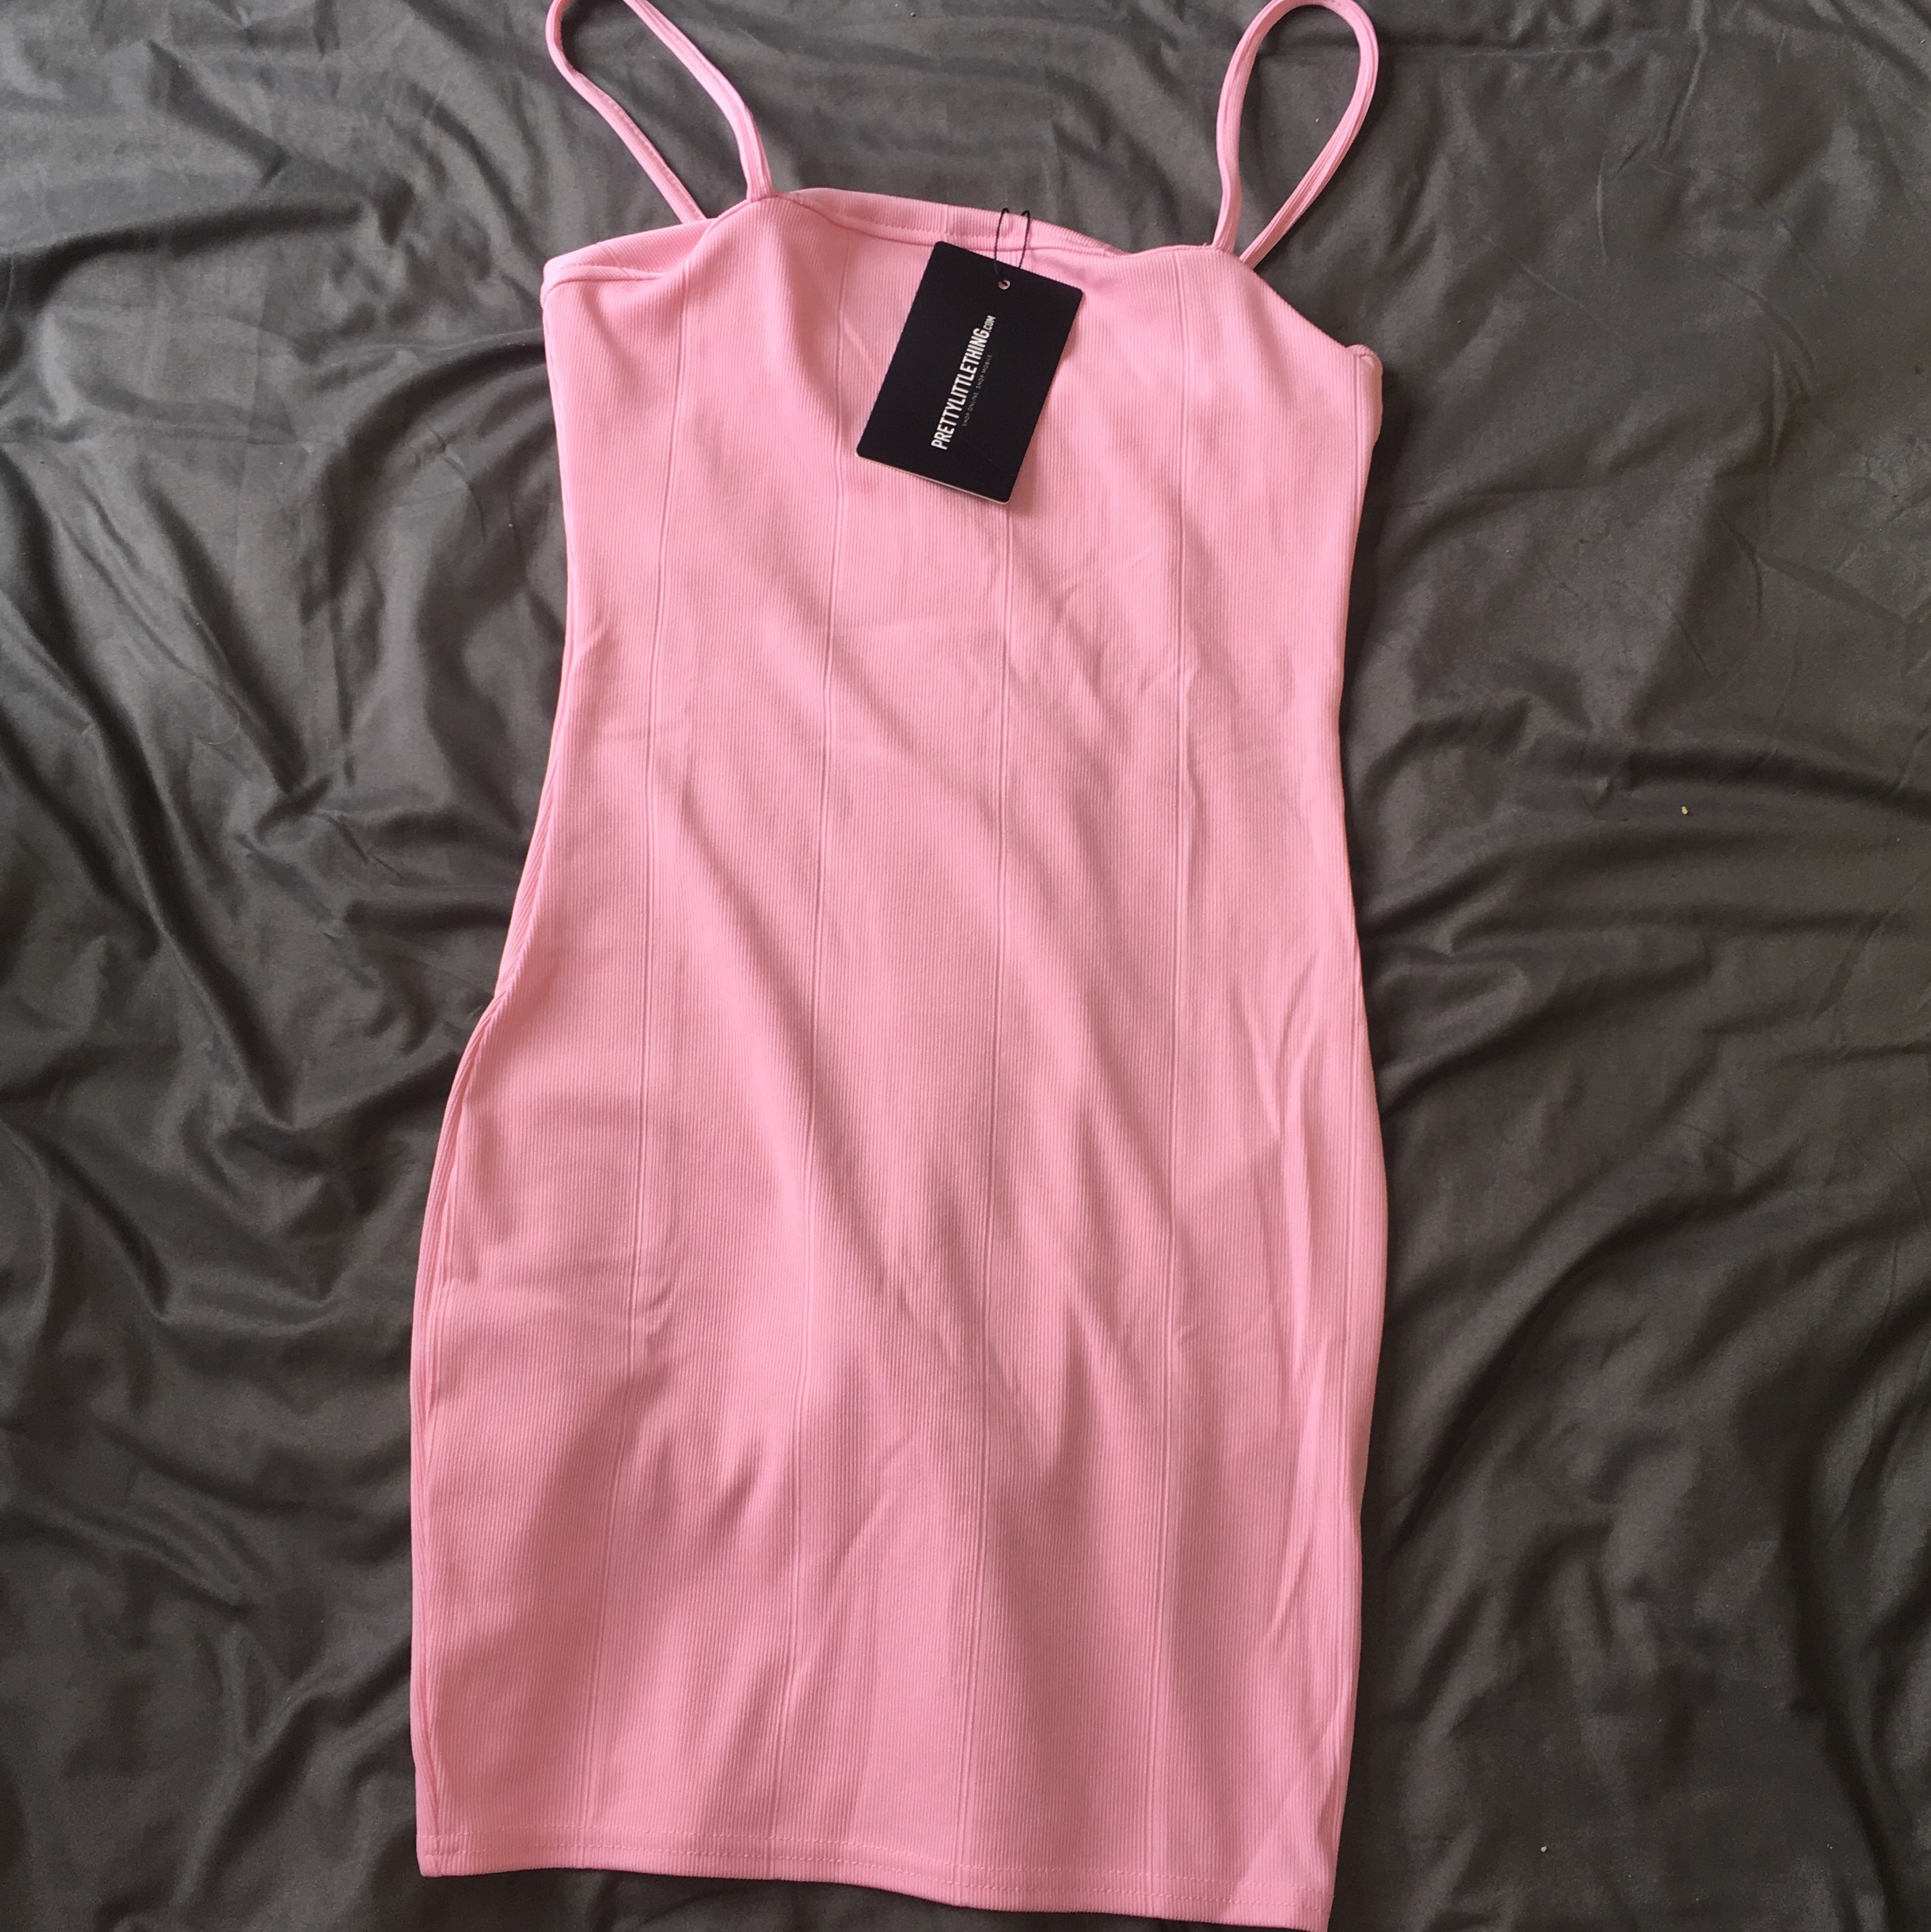 BRAND NEW with tags Baby pink bandage dress pretty